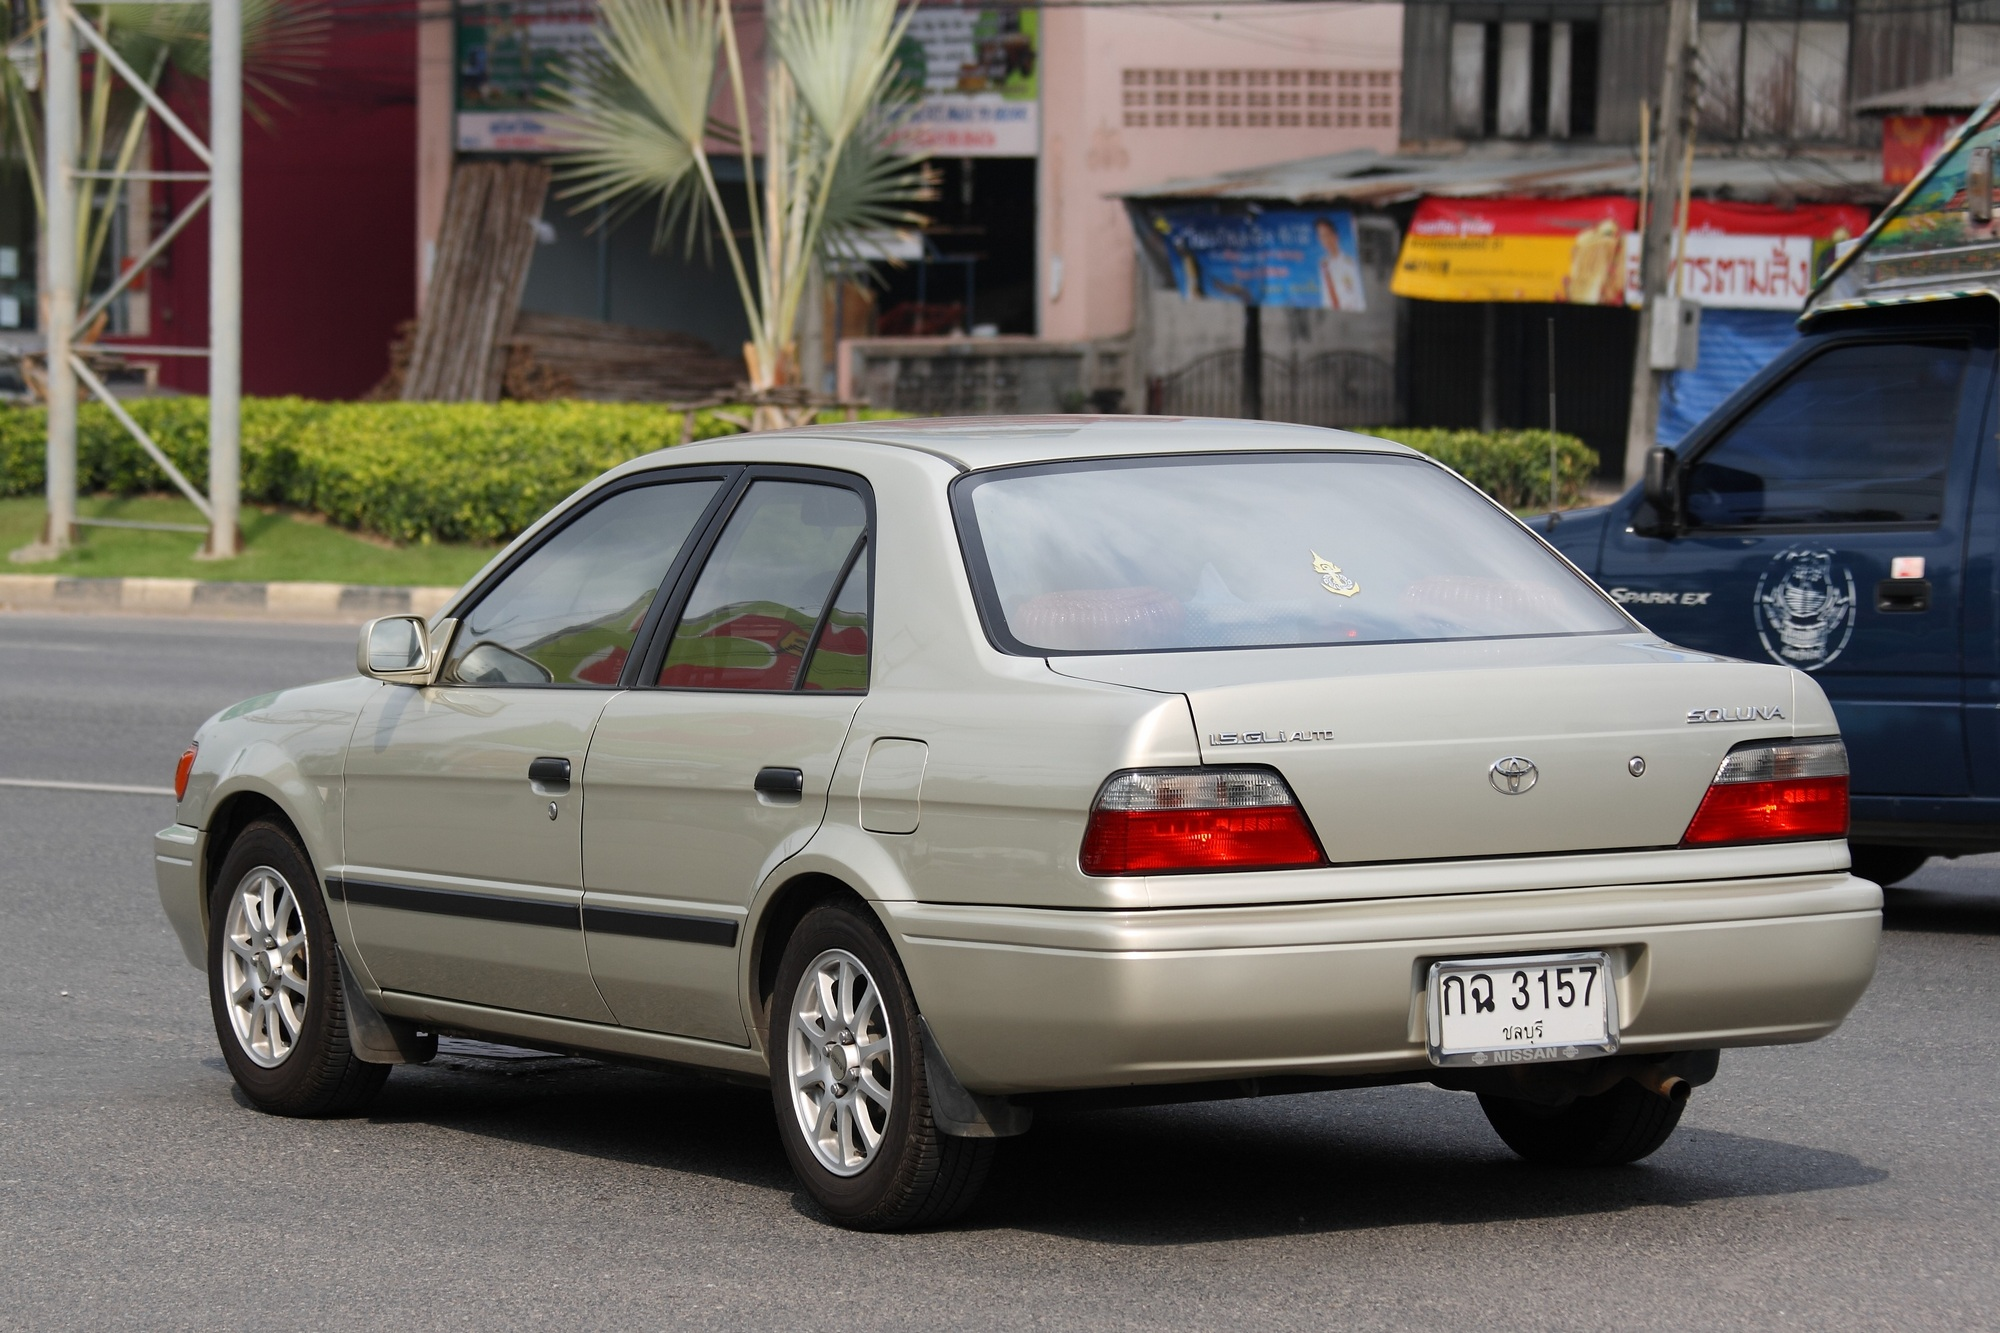 File:Toyota Soluna in Pattaya.JPG  Wikimedia Commons